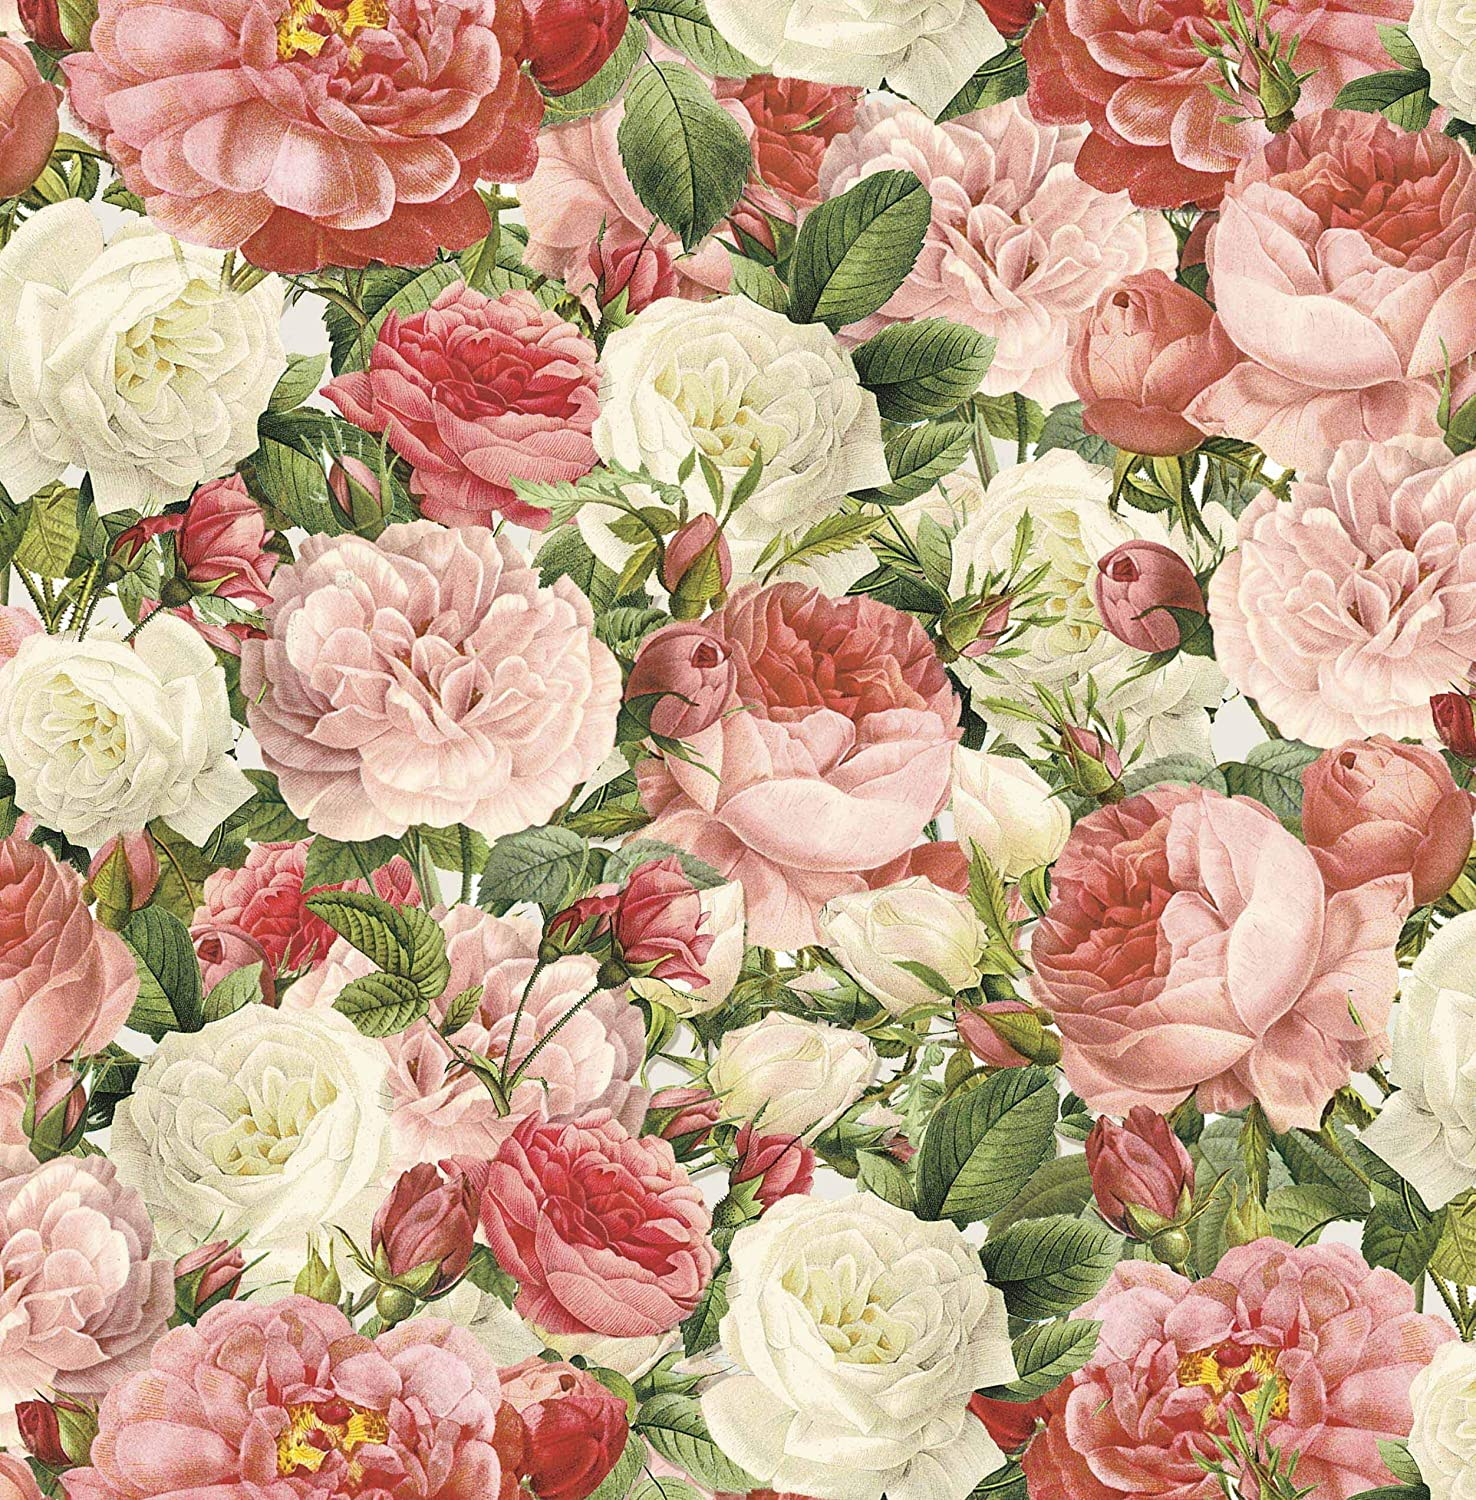 Roses Vintage Pink 100/% Cotton Fabric Children Craft